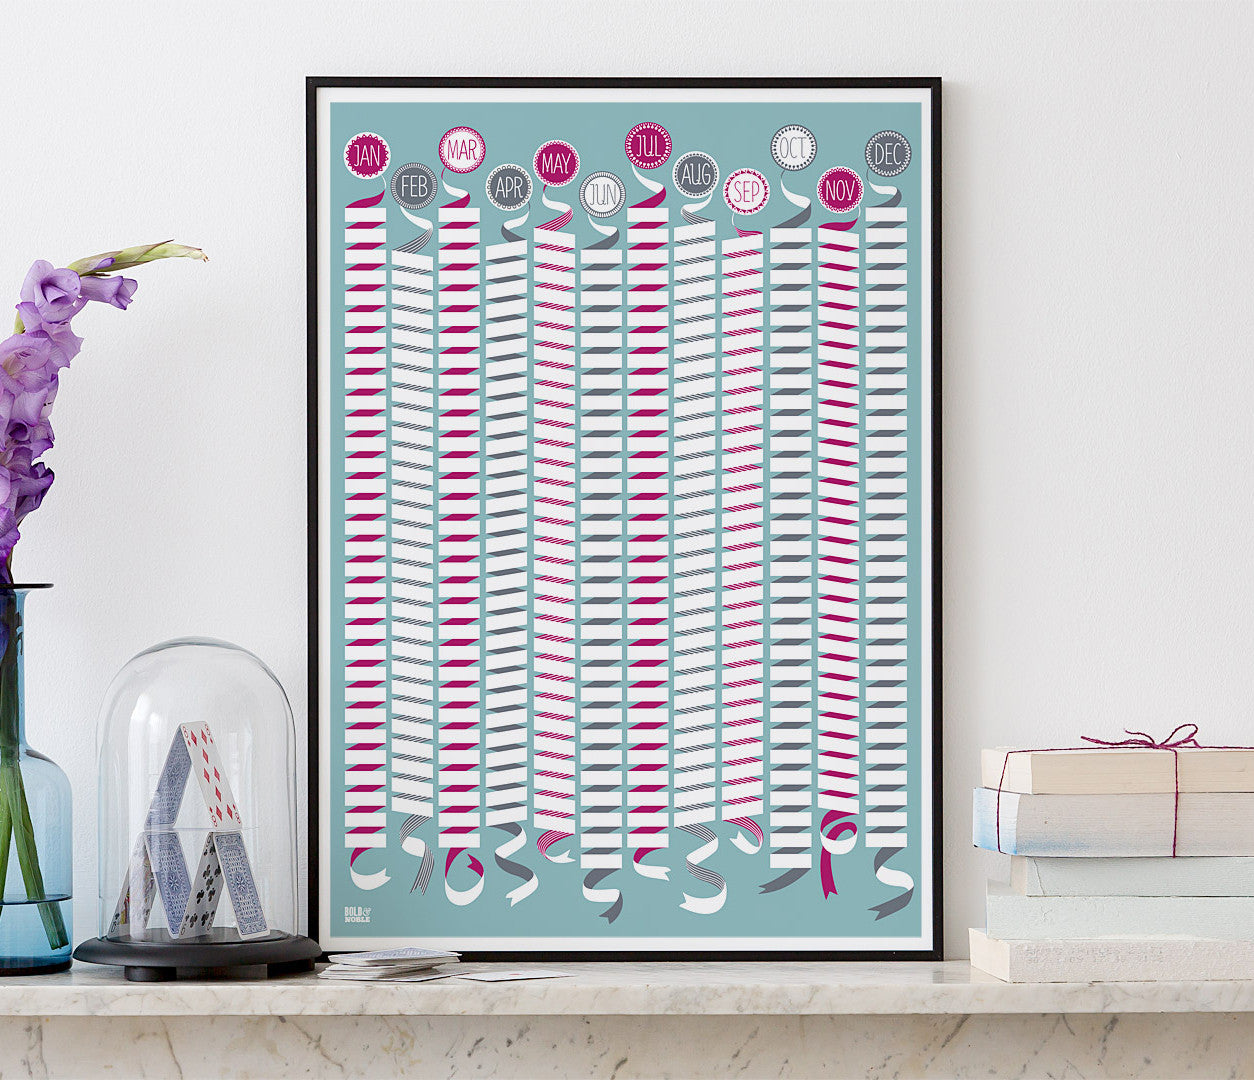 Pictures and Wall Art, Screen Printed Wall Calendar in Blue and Pink